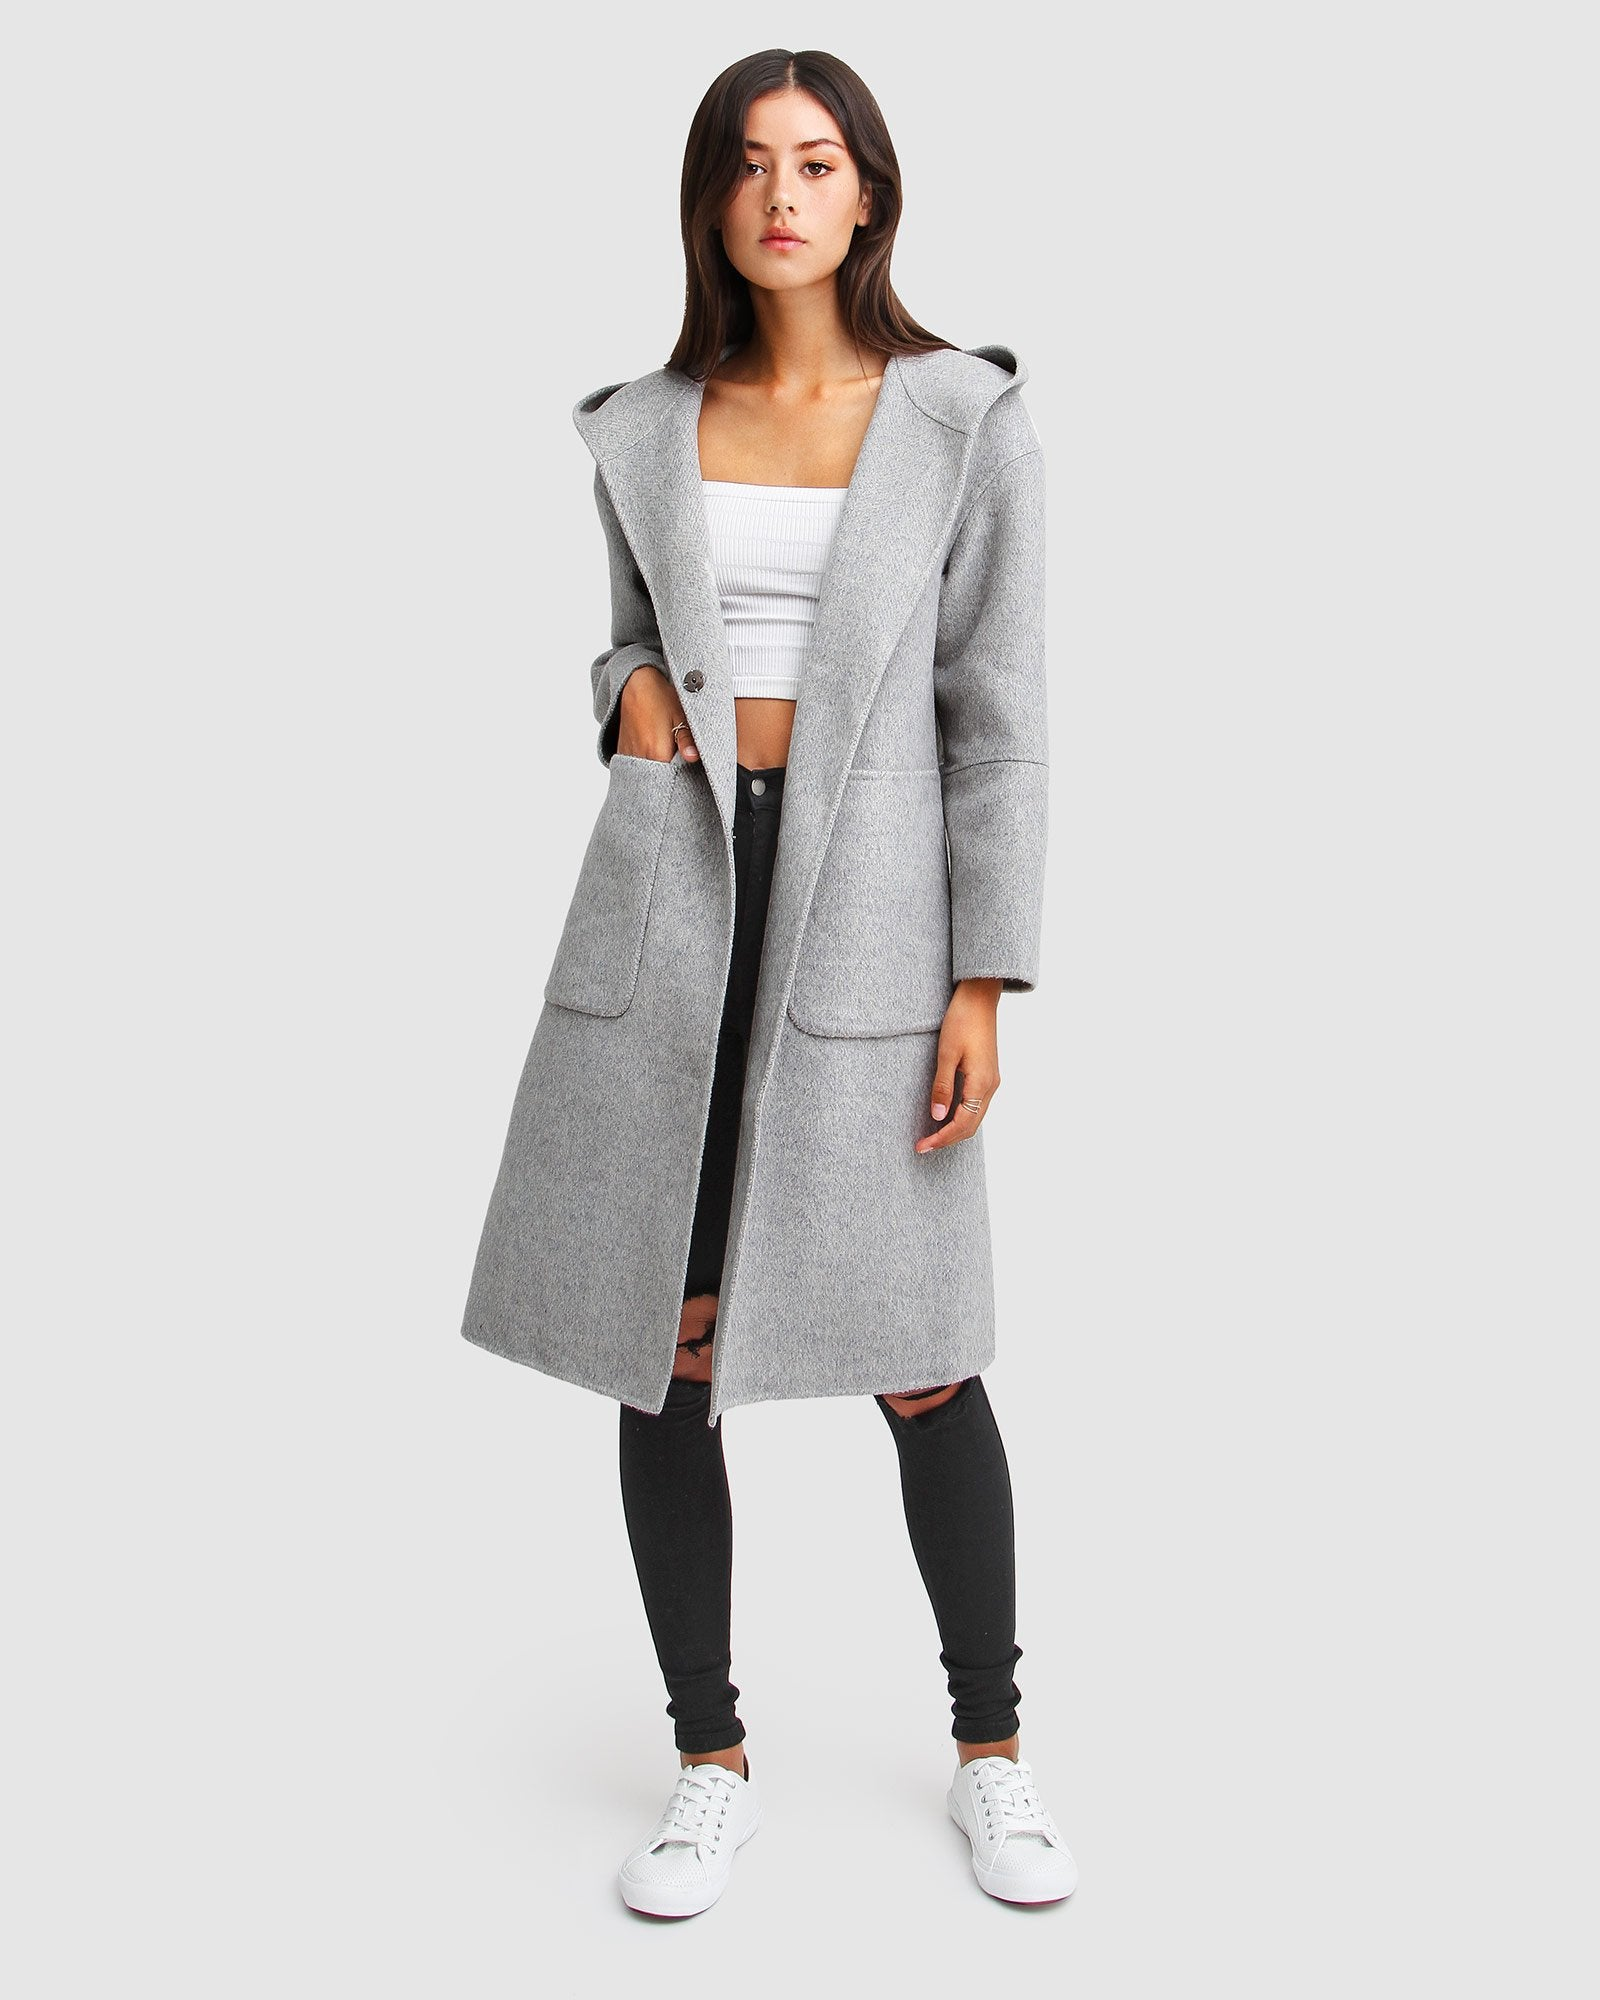 Walk This Way Wool Blend Oversized Coat - Grey